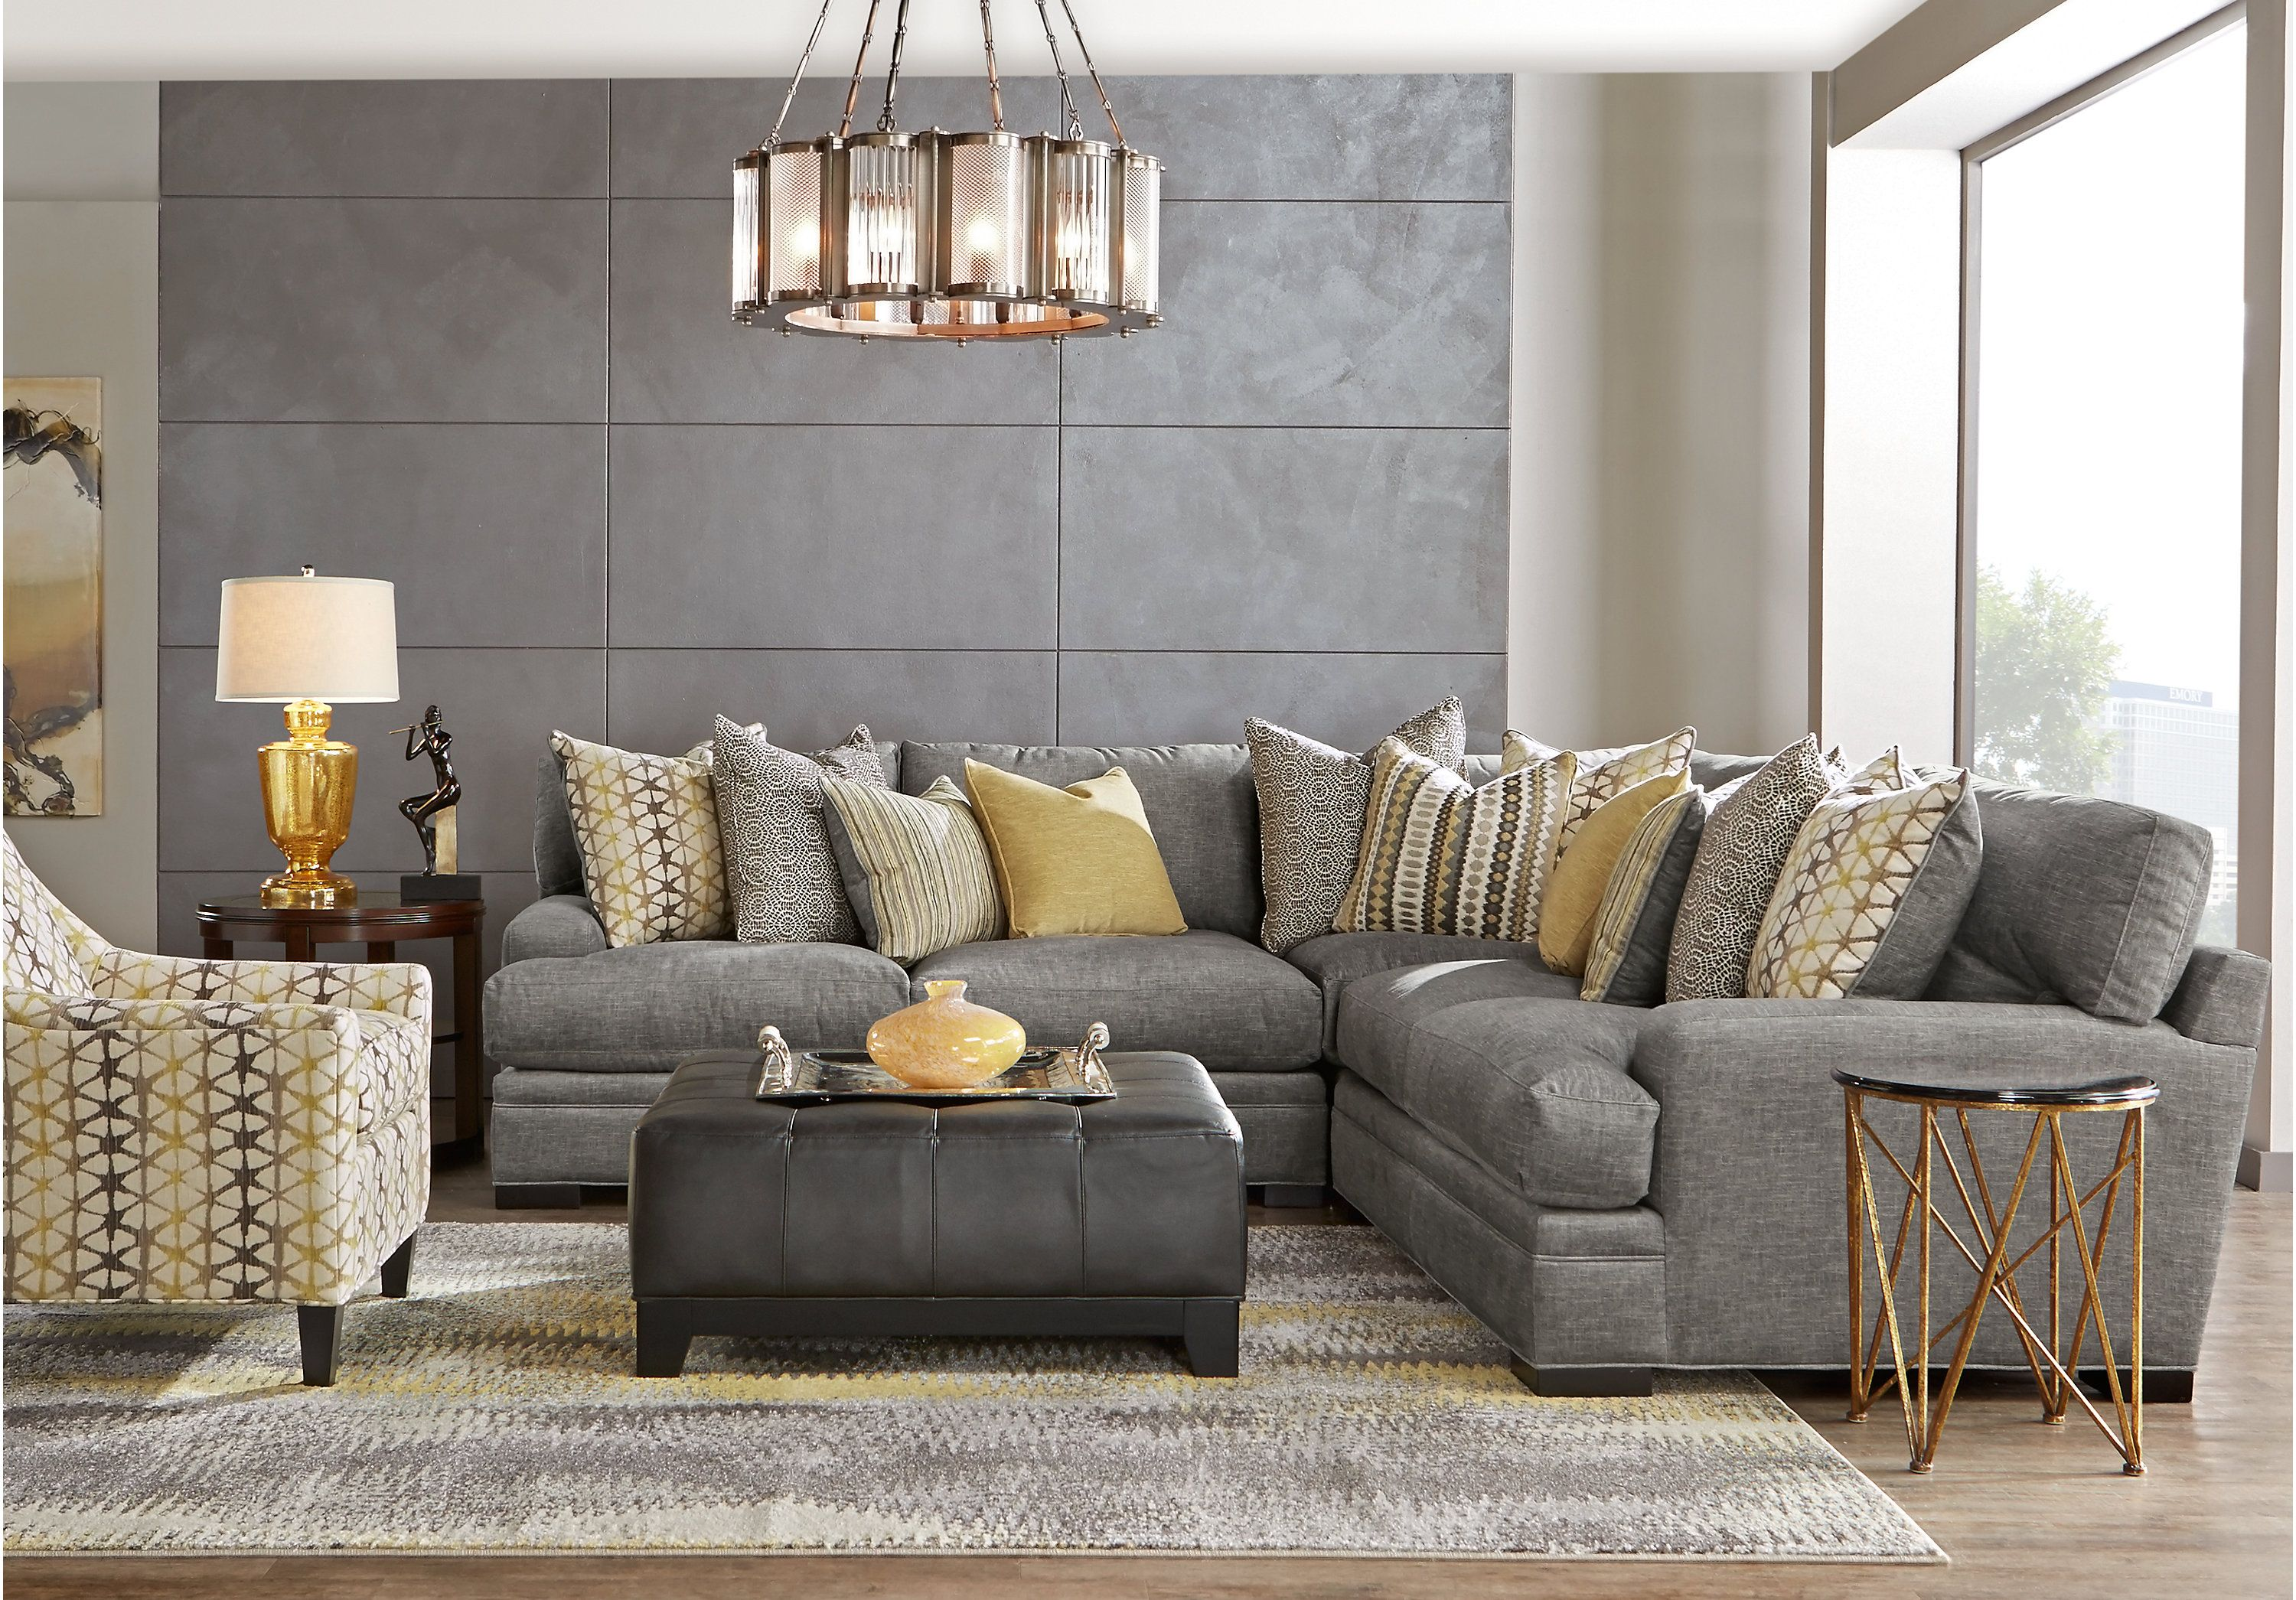 Shop for a Cindy Crawford Home Lincoln Square 4 Pc Sectional